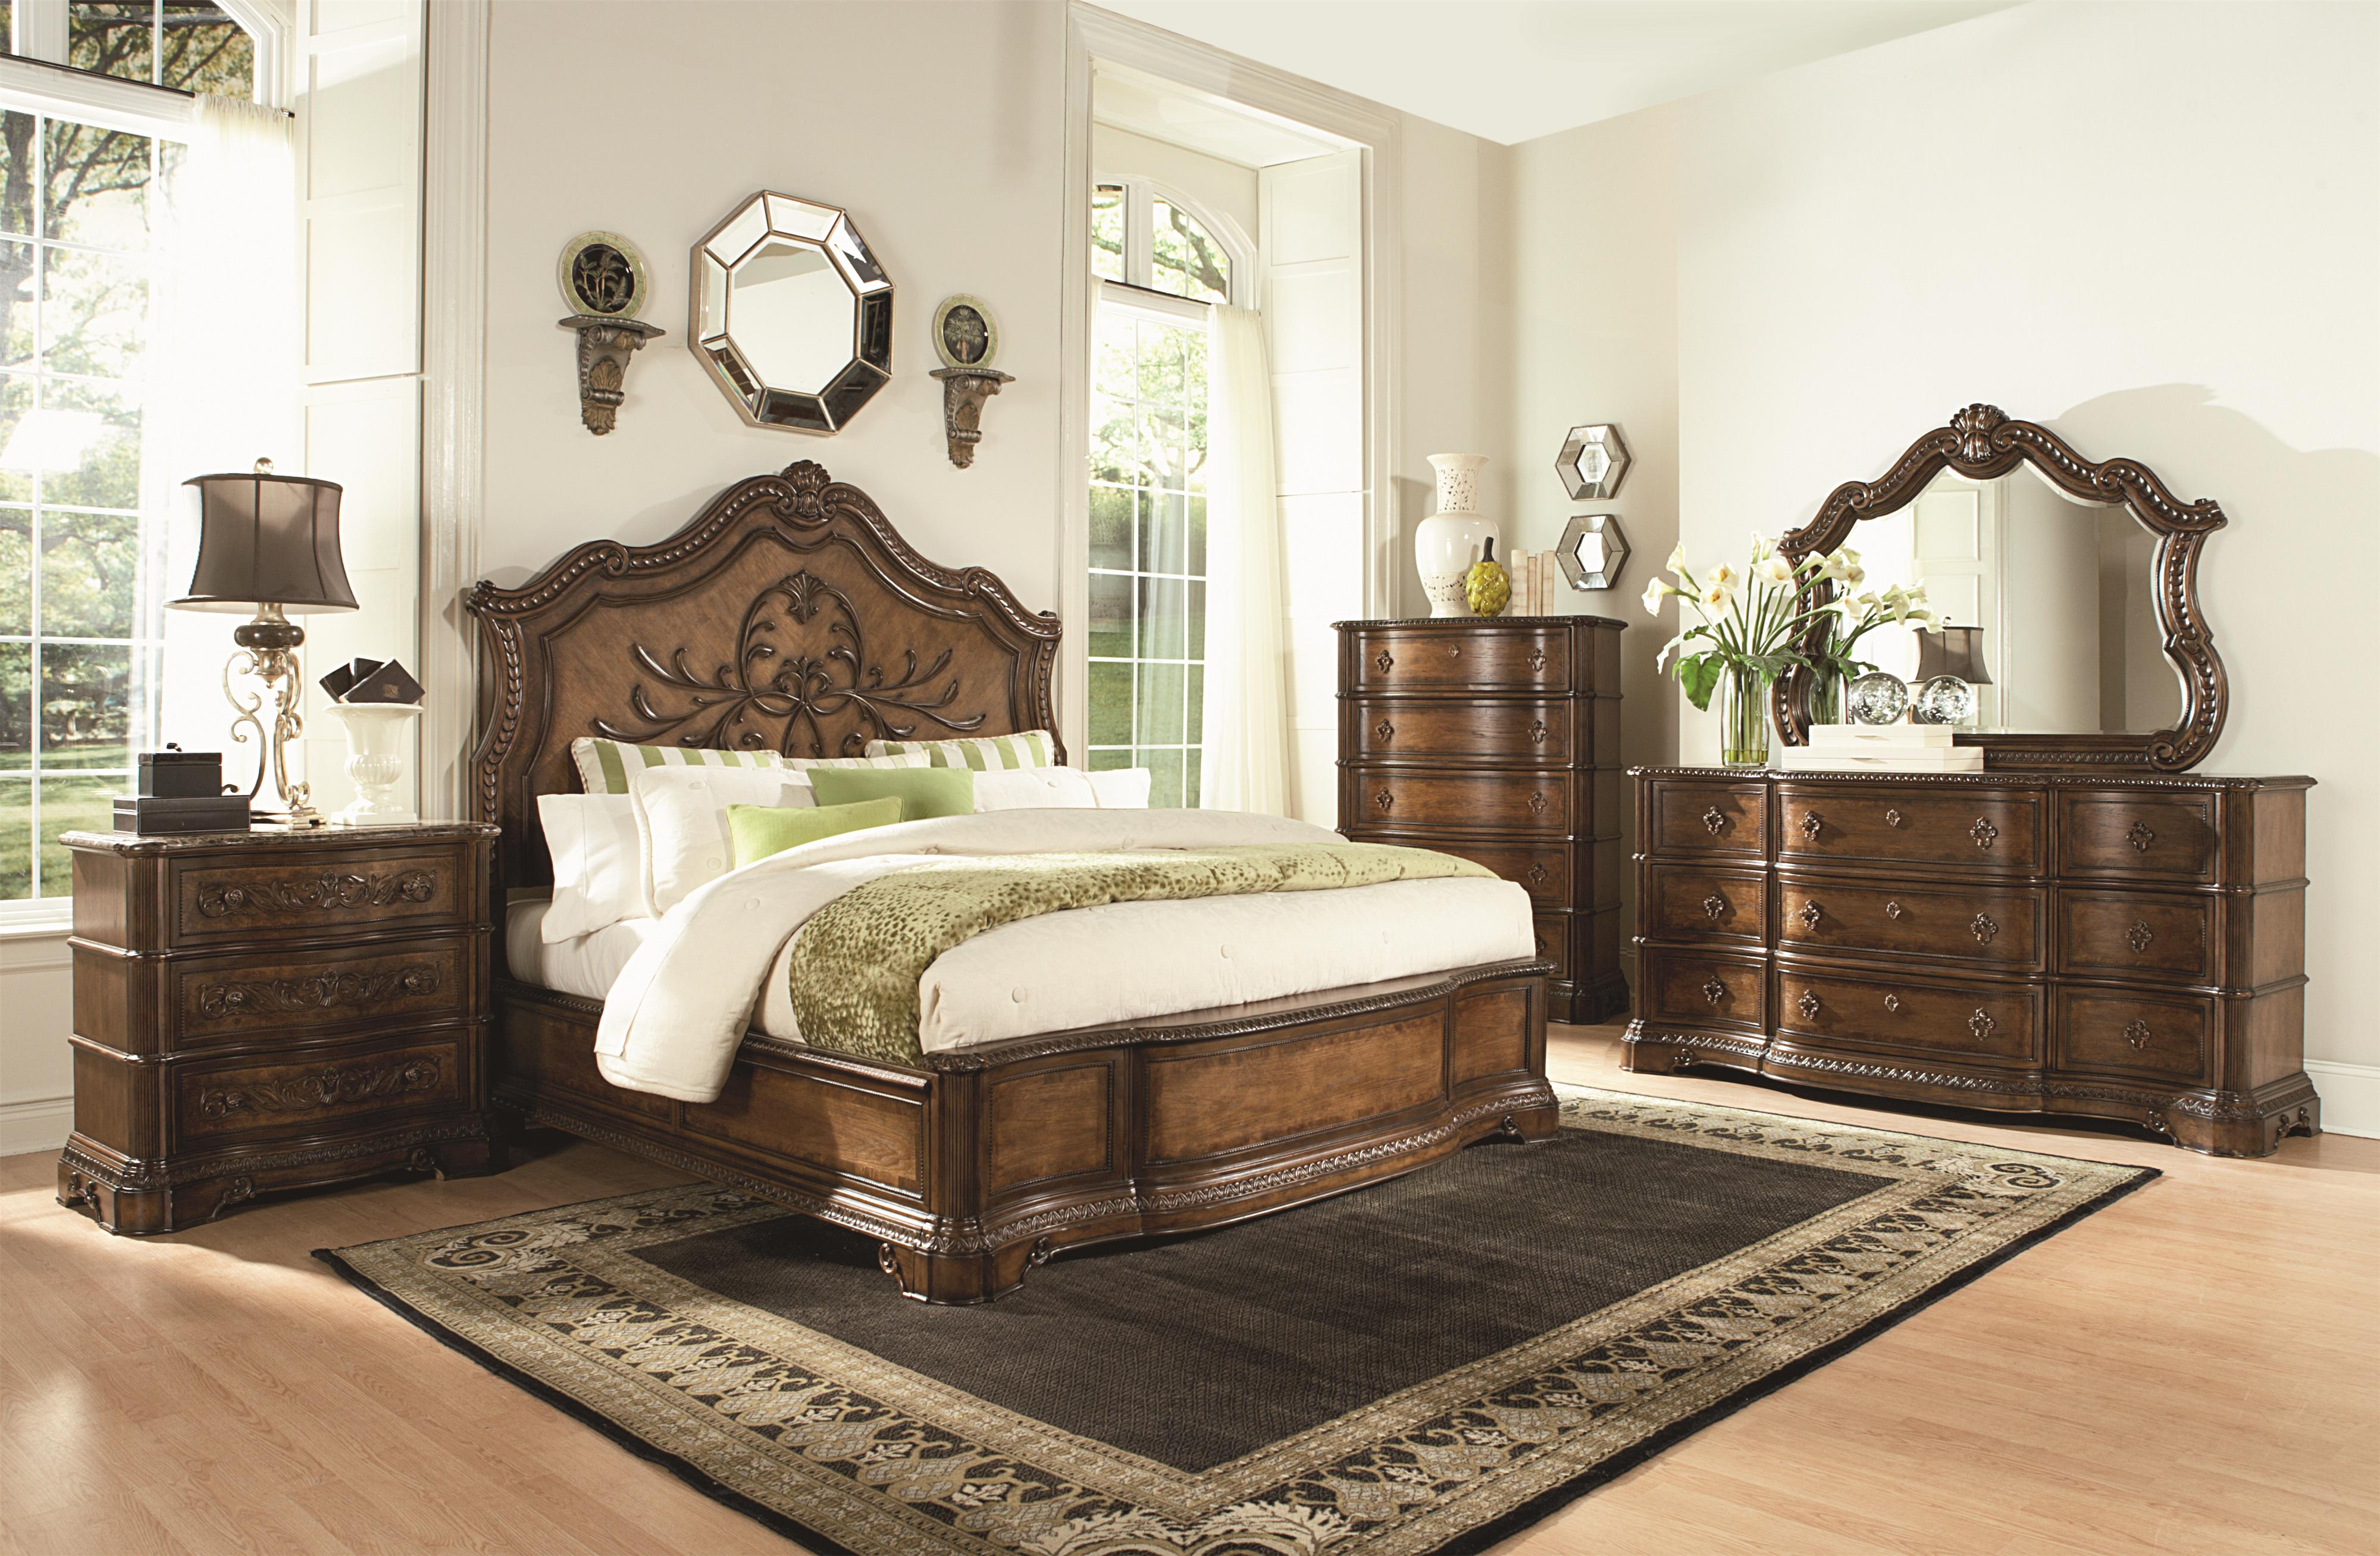 california king panel bed bedroom furniture additional information - California King Wood Bed Frame